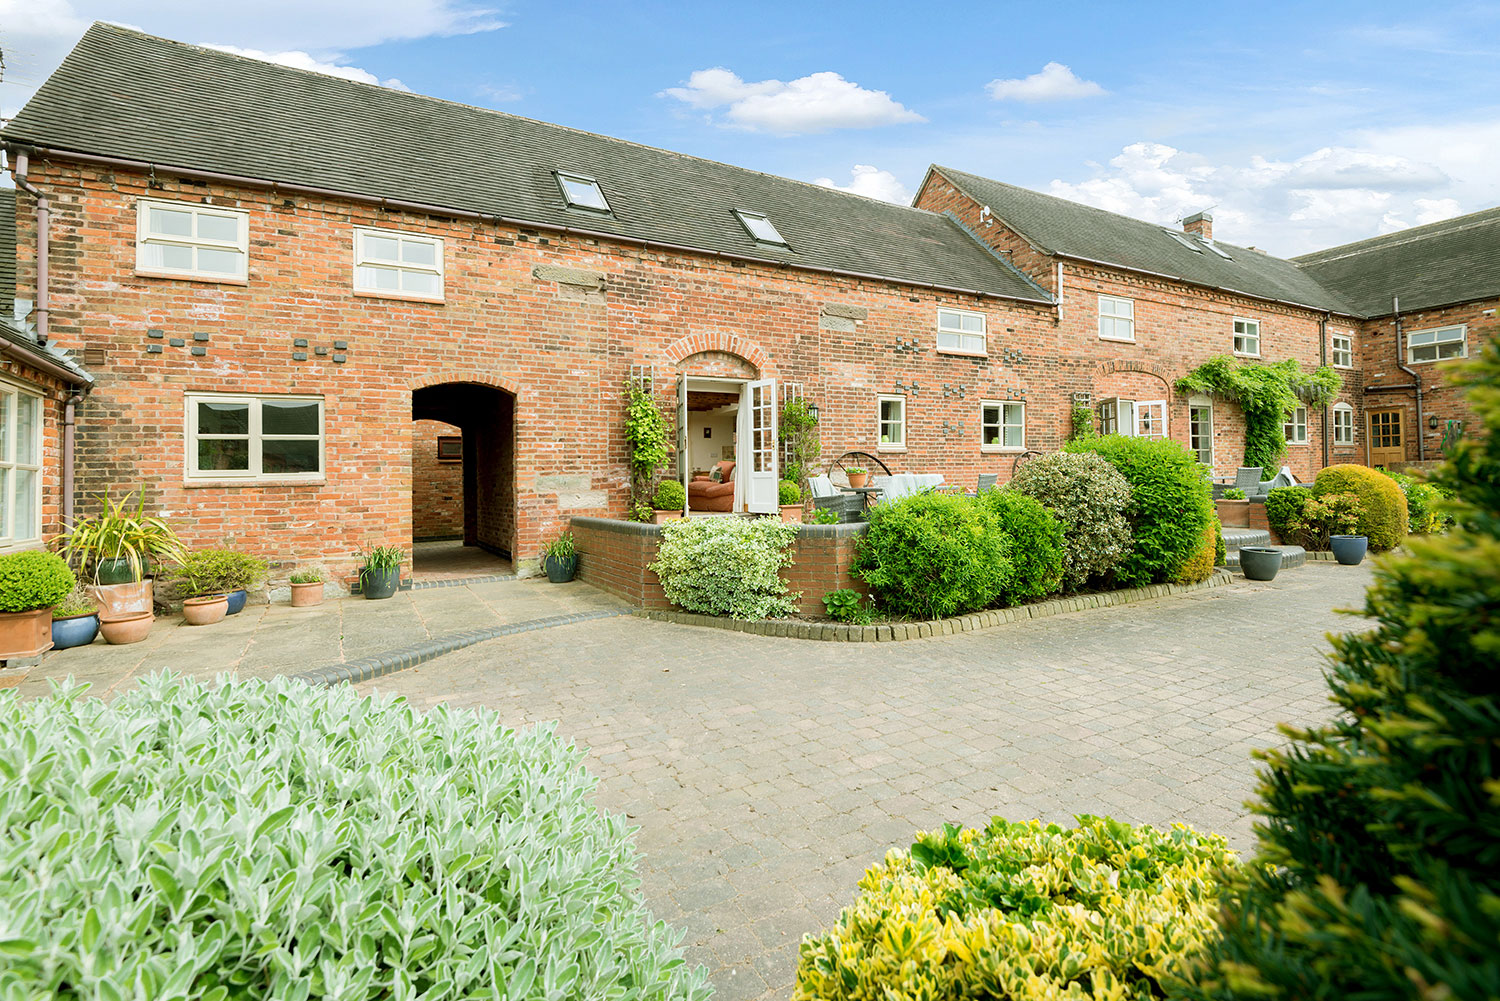 Group bookings to celebrate special occasions | Upper Rectory Farm Cottages